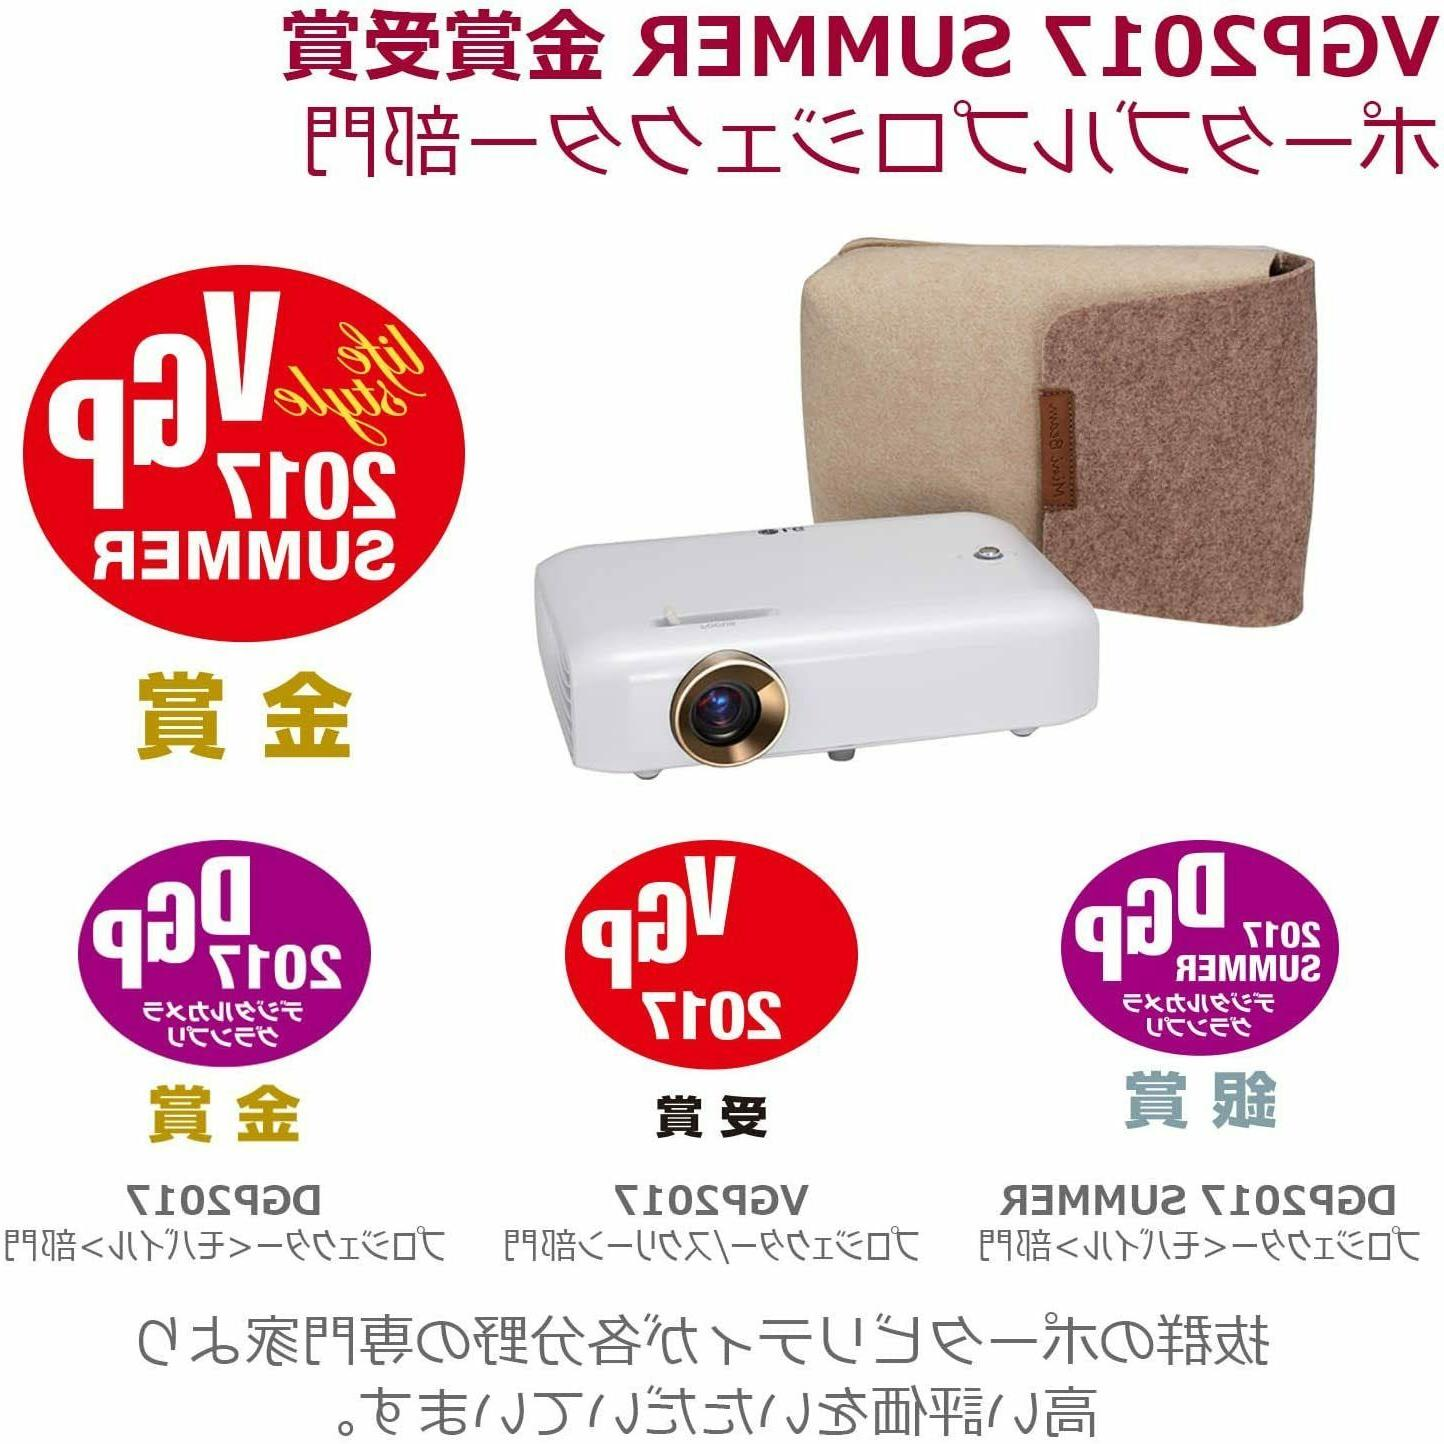 LG PH550G Portable Projector Life /Hd/550Lm On